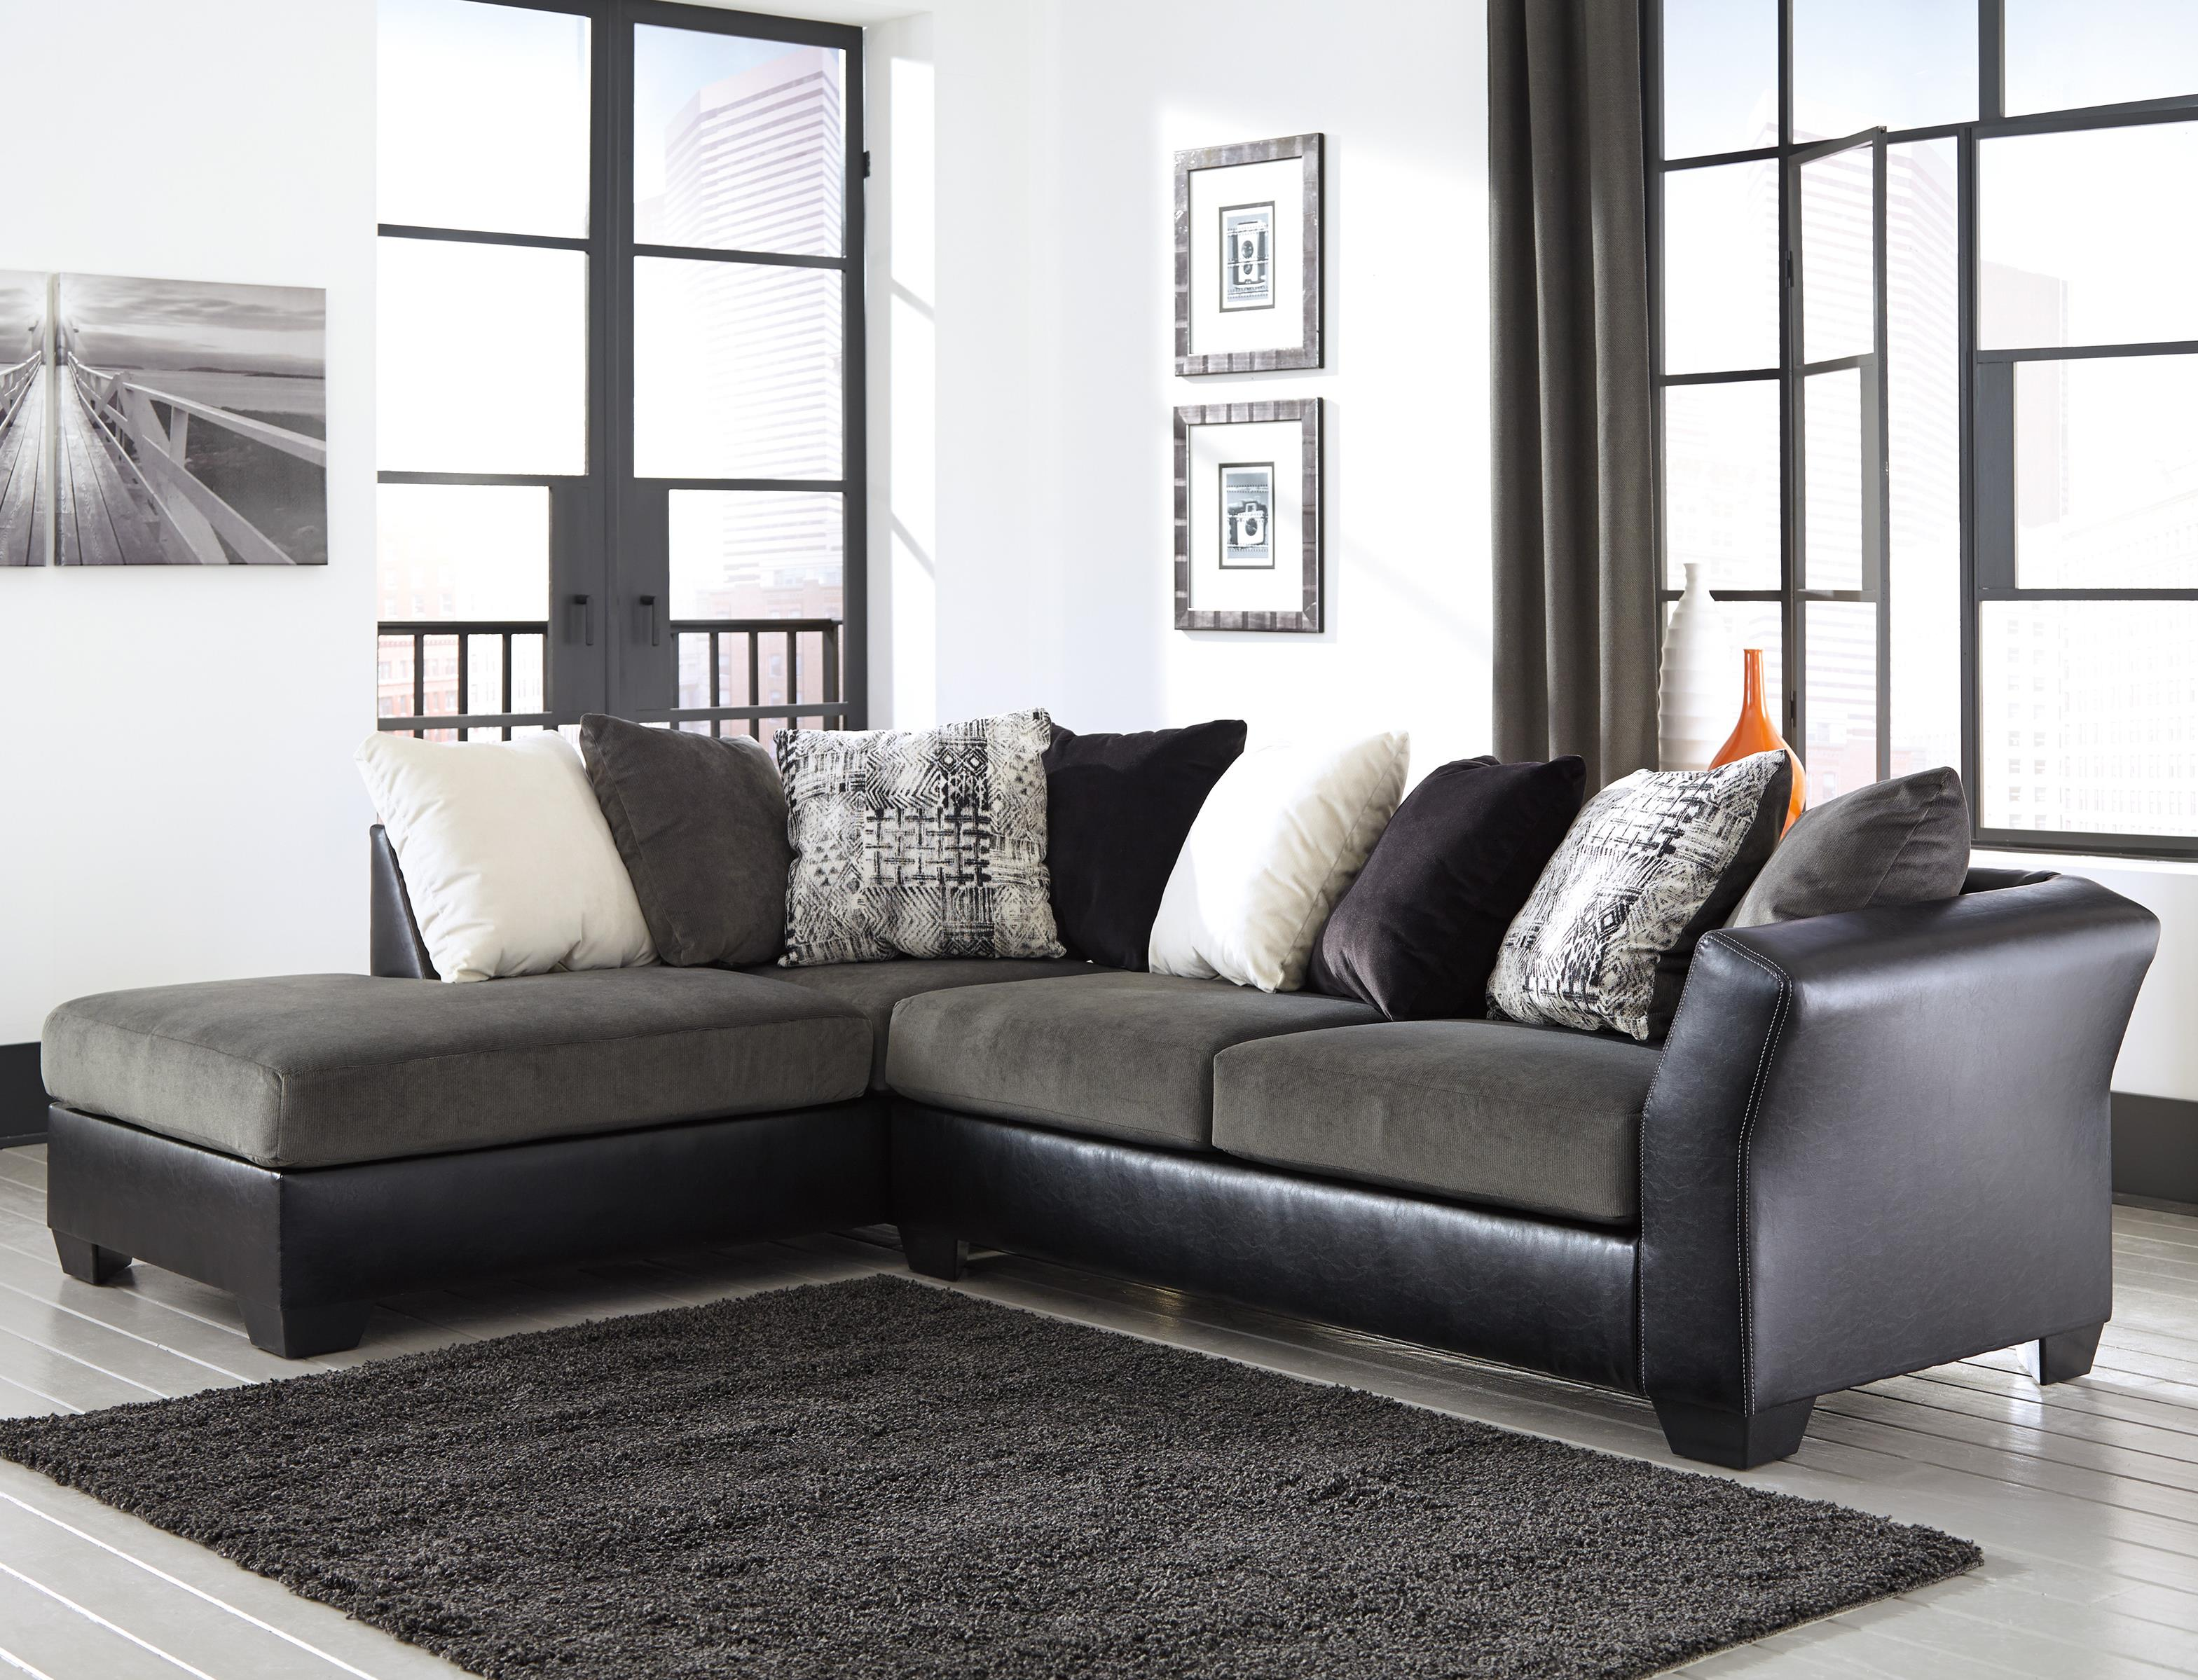 Signature Design by Ashley Armant 2-Piece Sectional with Left Chaise - Item Number: 2020016+67